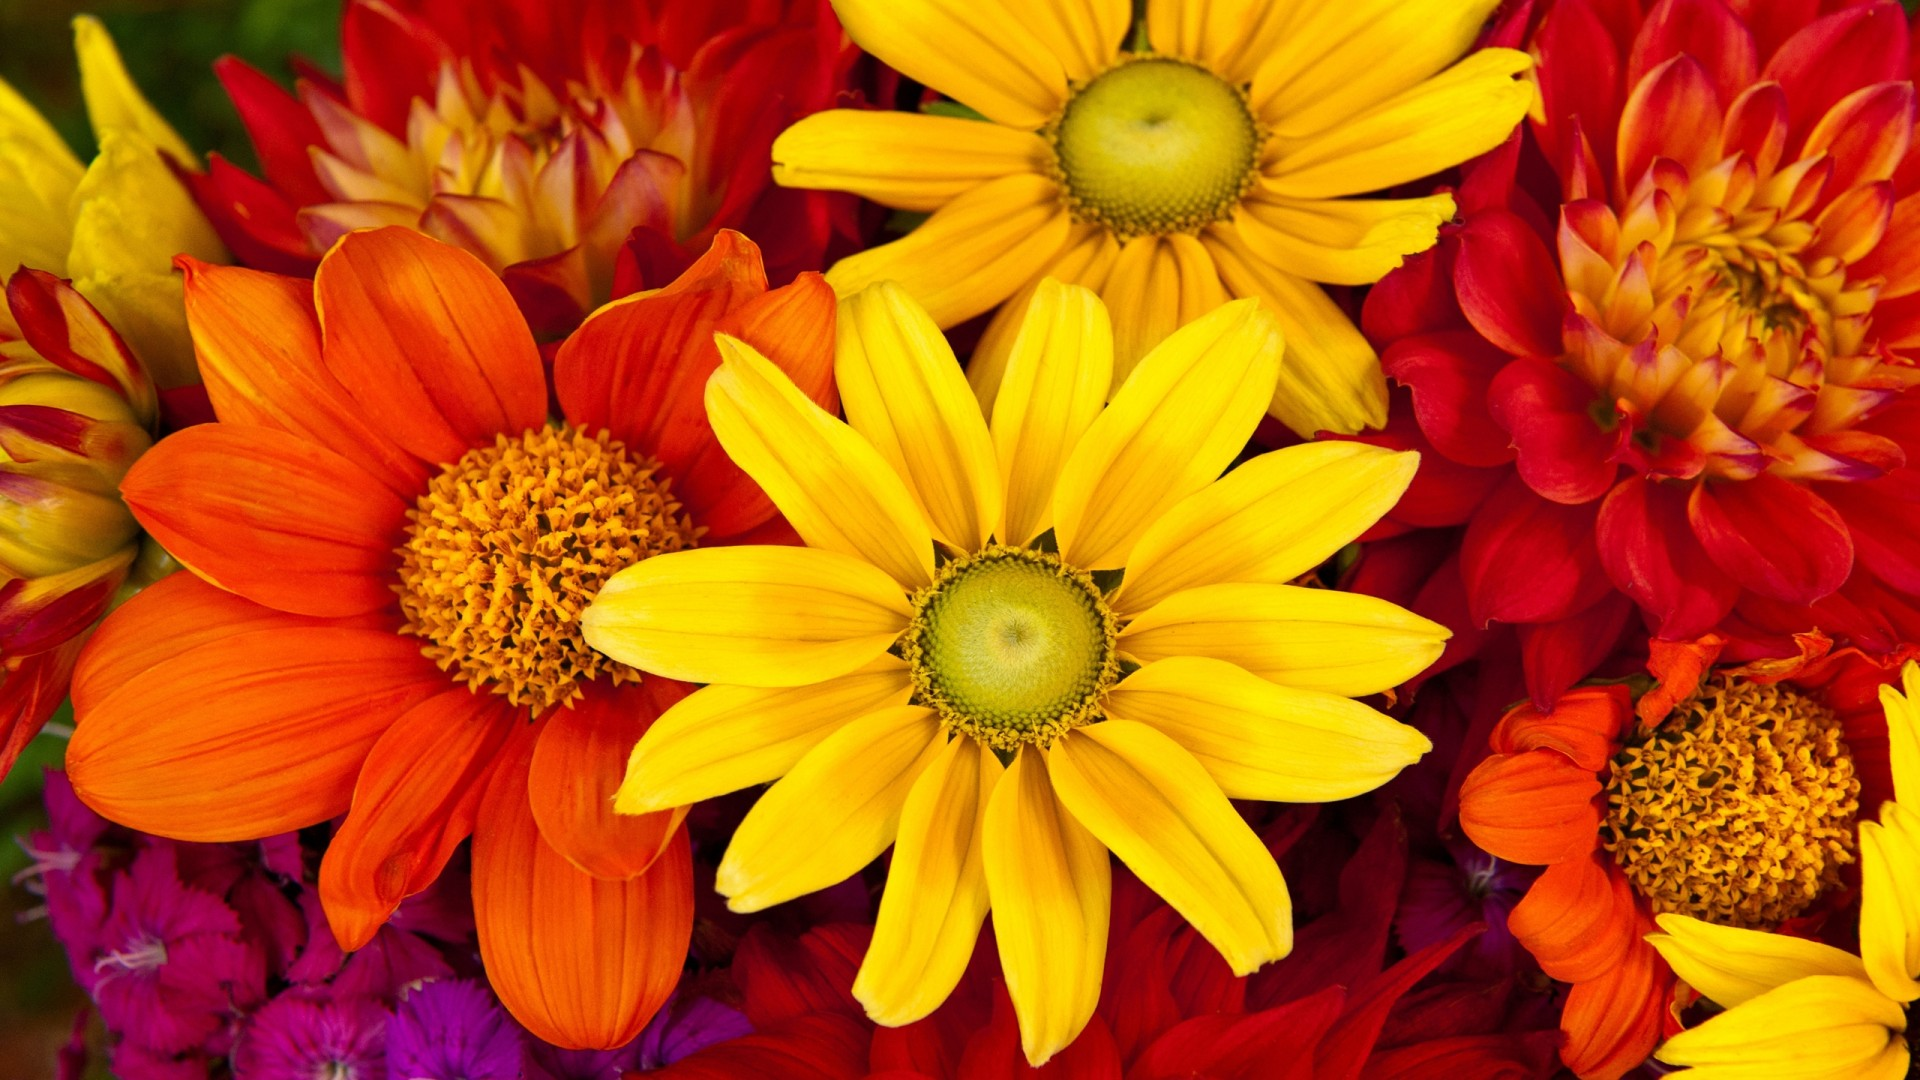 Flash Sale! 29% Off The Aztec Sun Bouquet – was £29.99, now £21.24 – Serenata Flowers Voucher Code